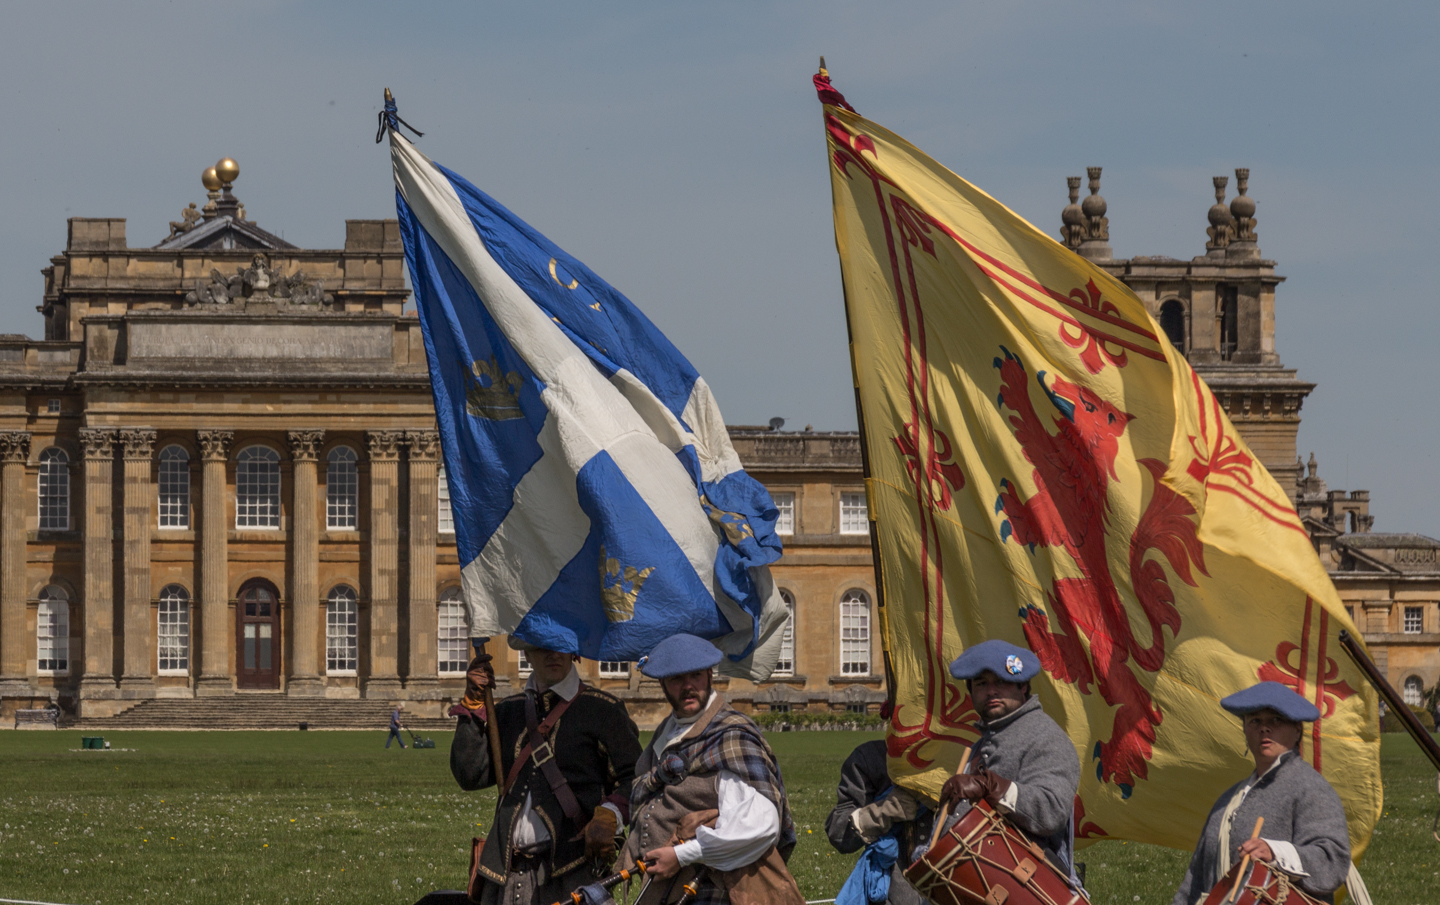 SK at Blenheim Palace May 2013